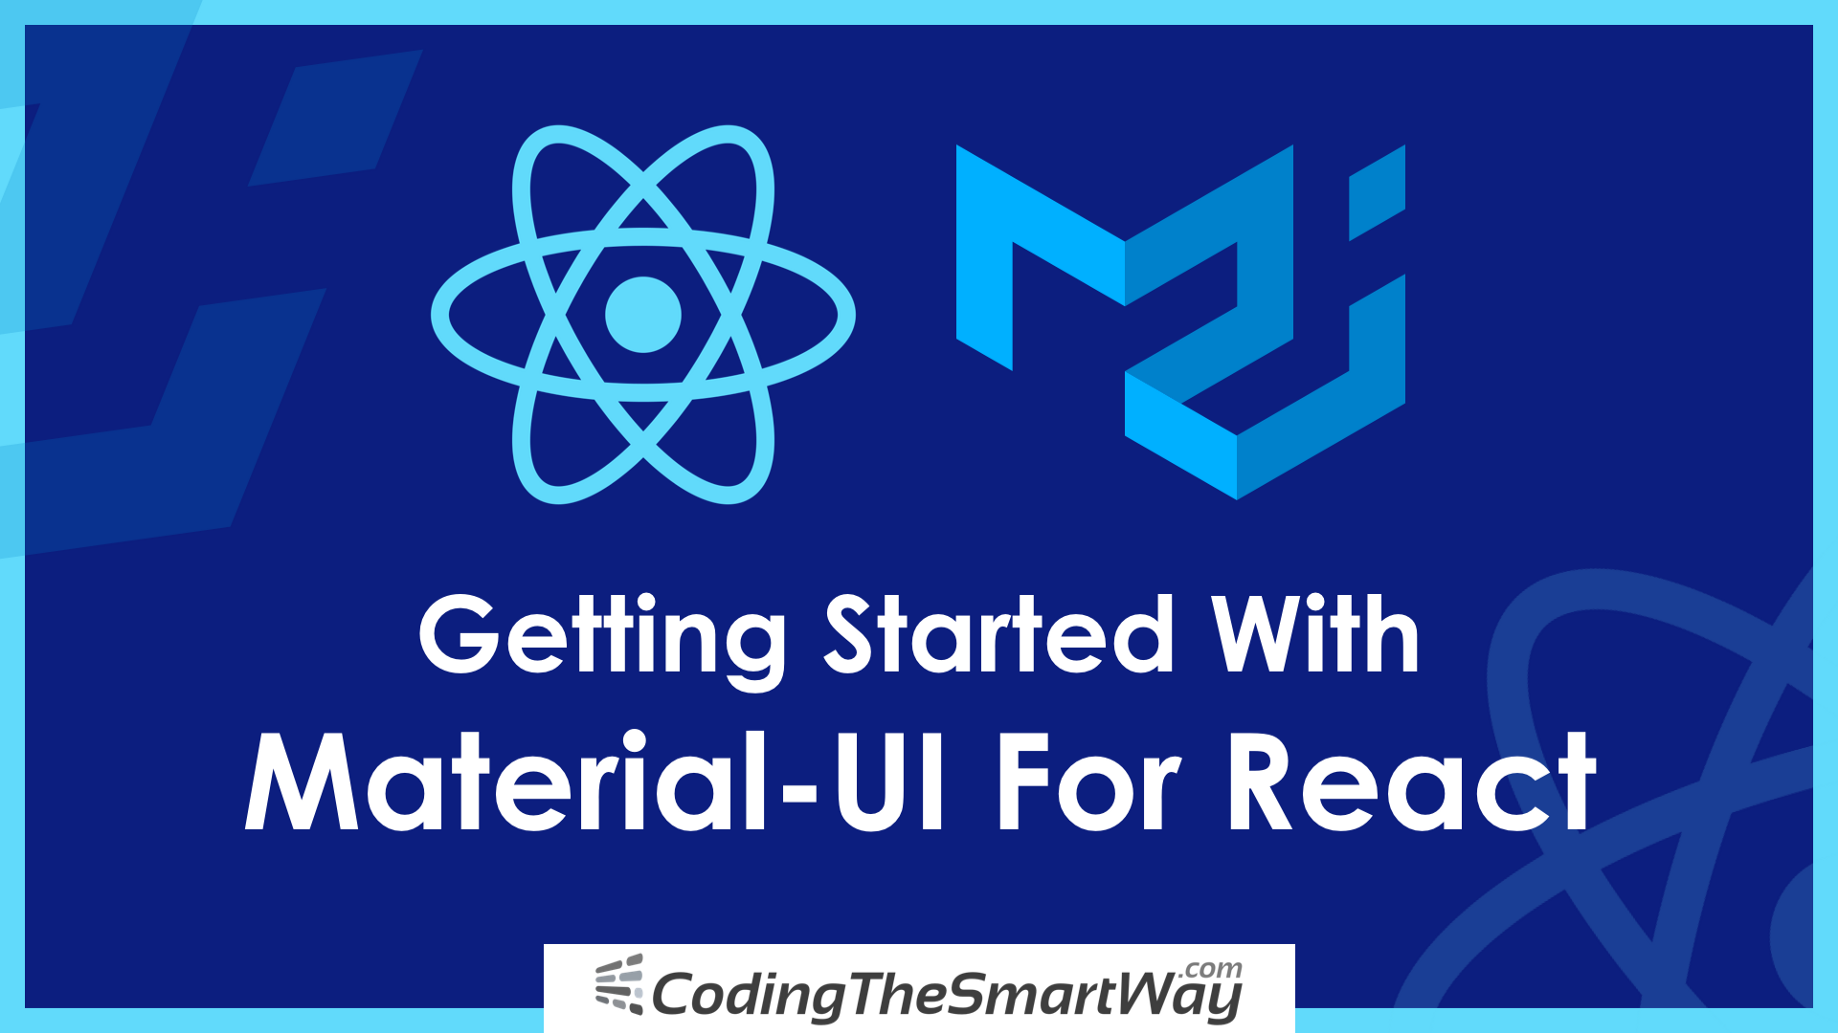 Getting Started With Material-UI For React (Material Design For React)